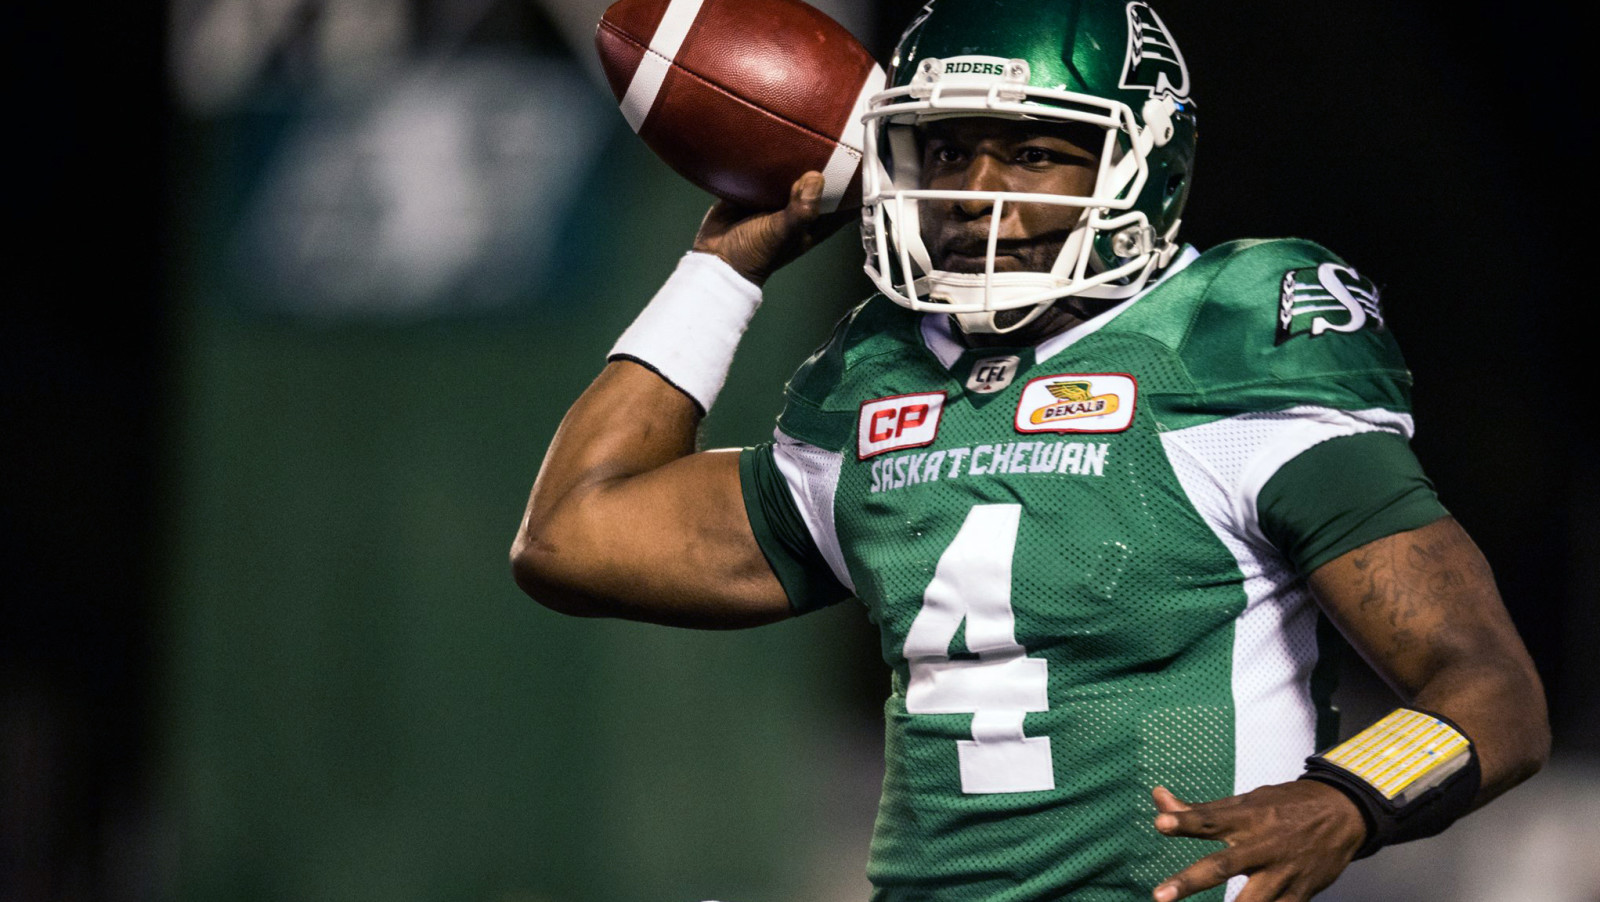 pedersen the return of chris jones ca riders pivot darian durant gets ready to throw during a week 2 loss to the argos ca